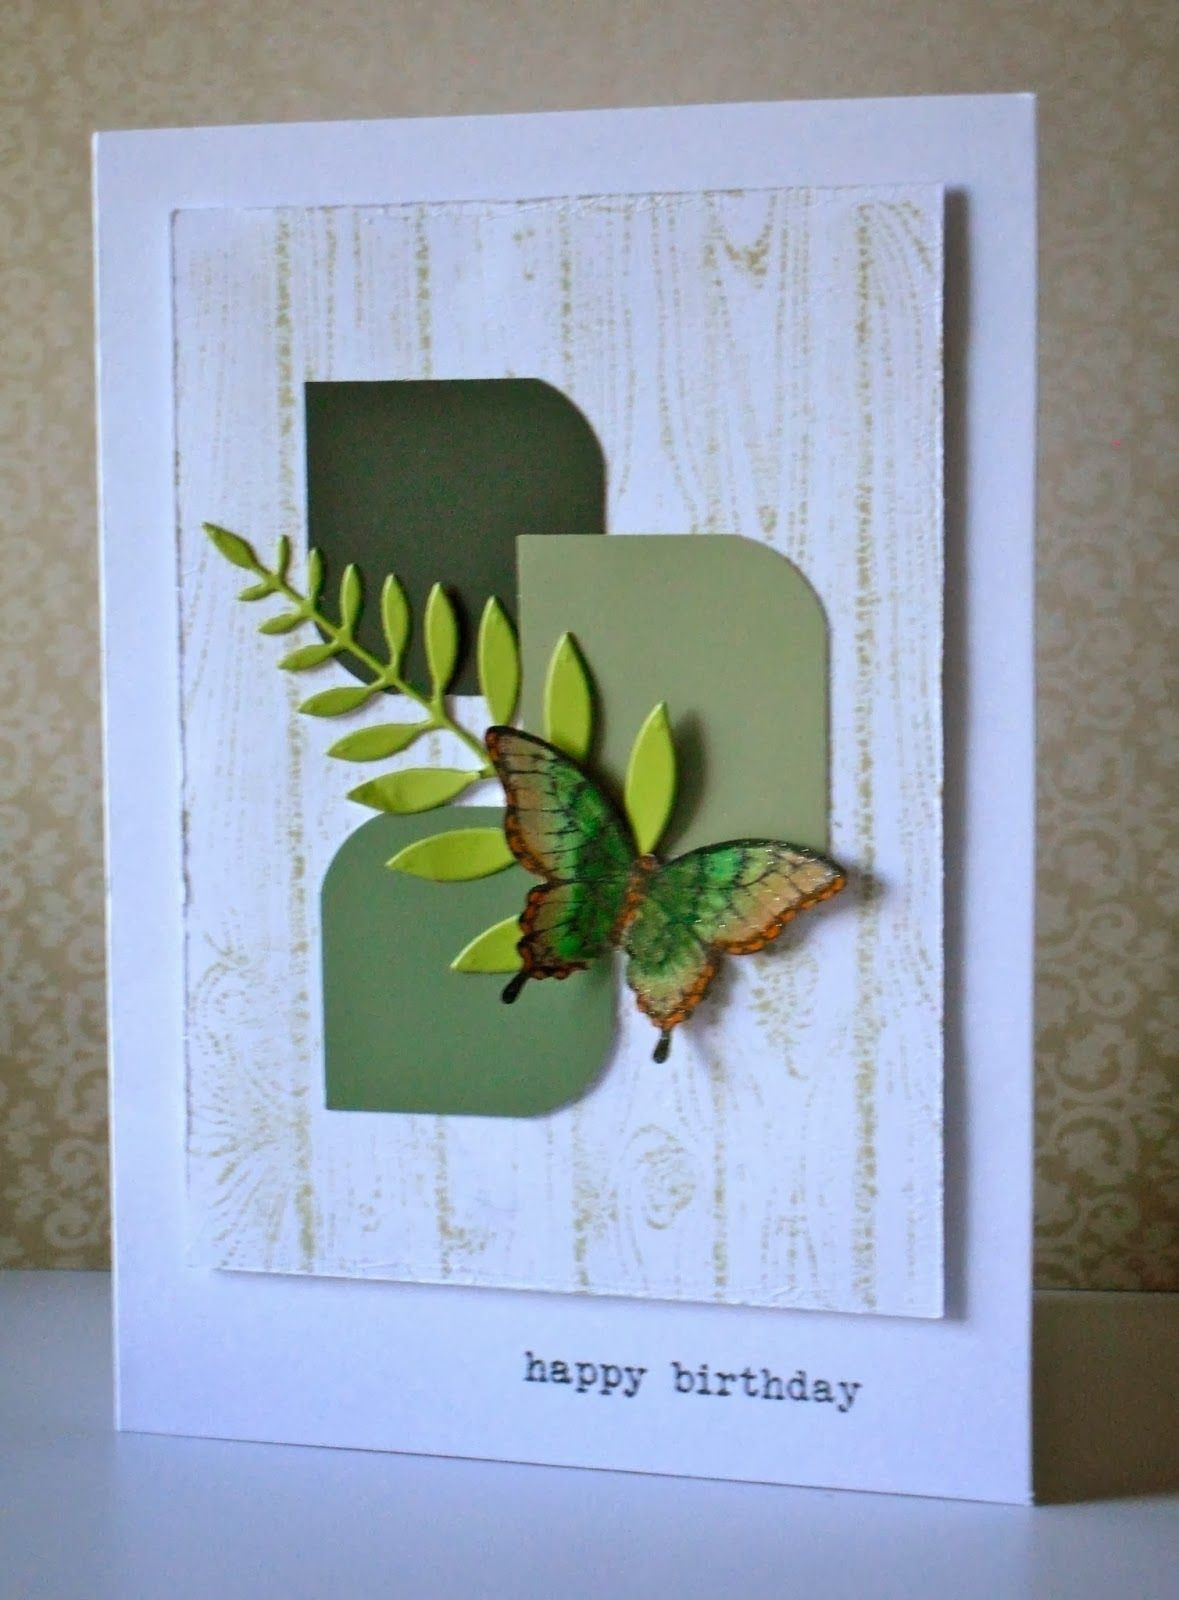 Stampin' Up! and Pinterest (Cardmaking 101) Greeting